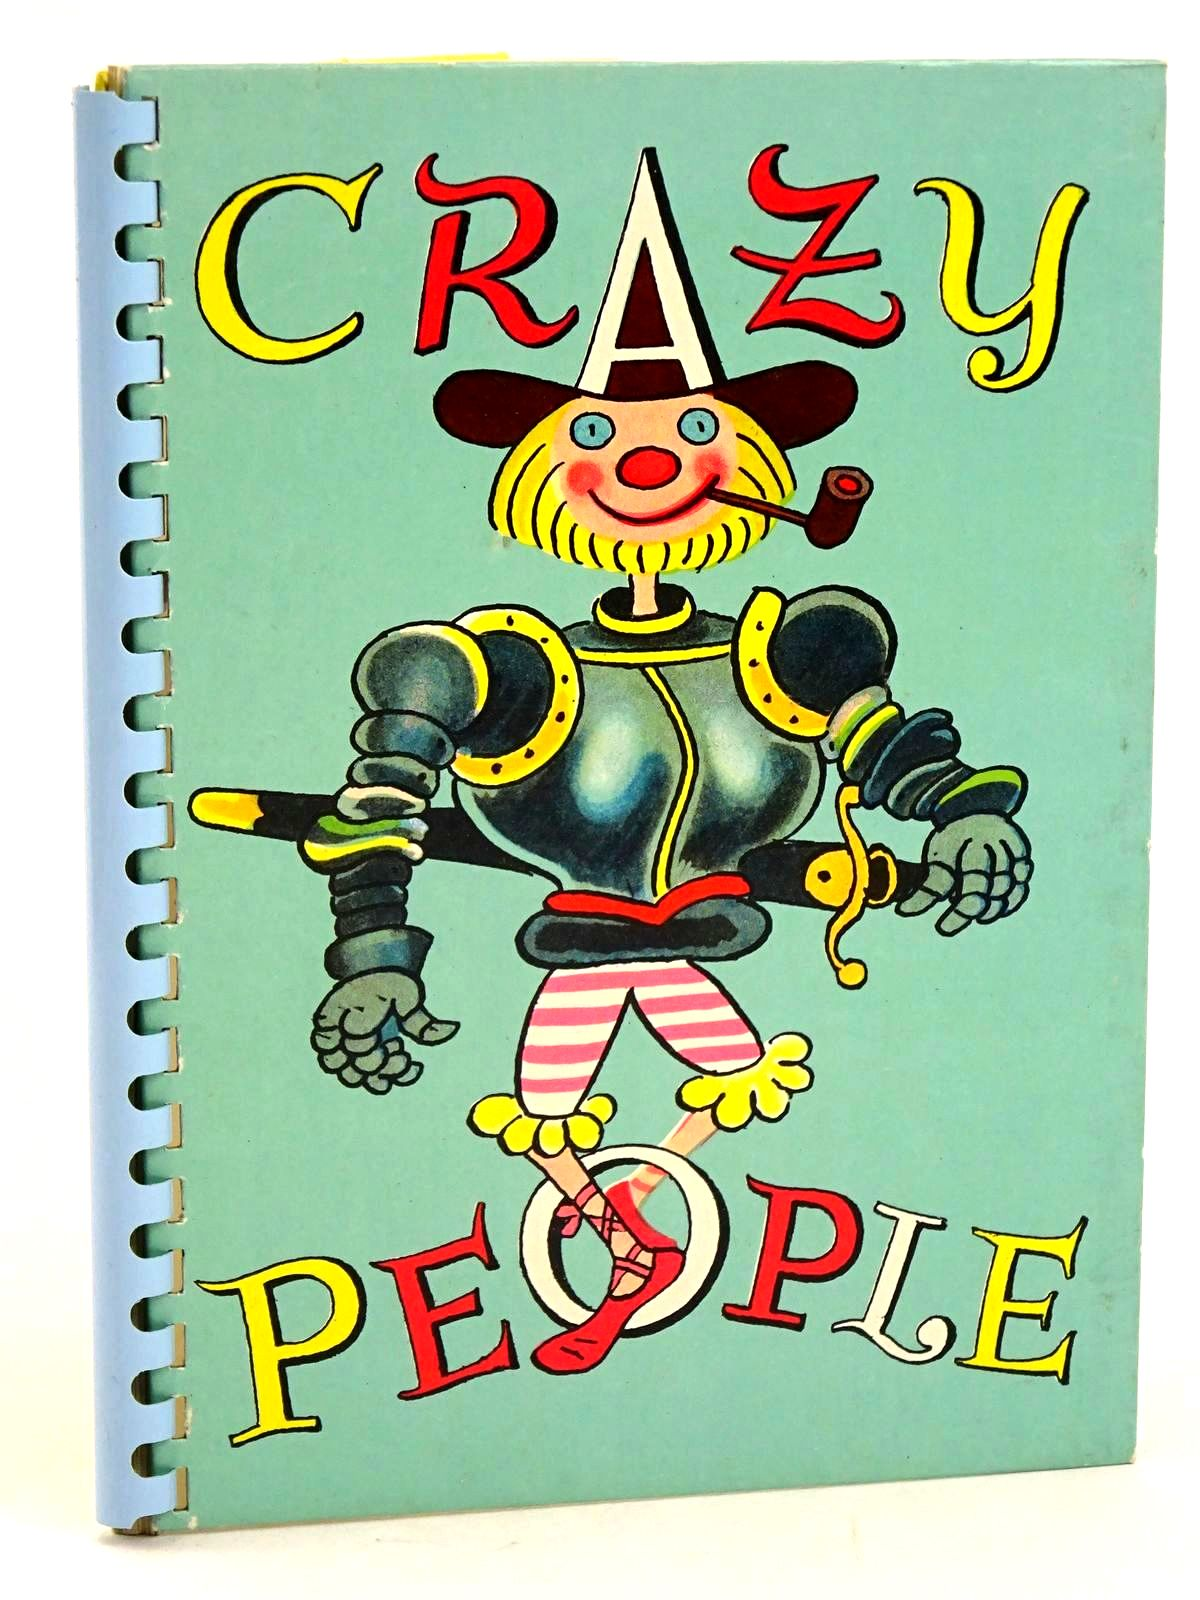 Photo of 8192 CRAZY PEOPLE illustrated by Trier, Walter published by Atrium Press Ltd. (STOCK CODE: 1318451)  for sale by Stella & Rose's Books